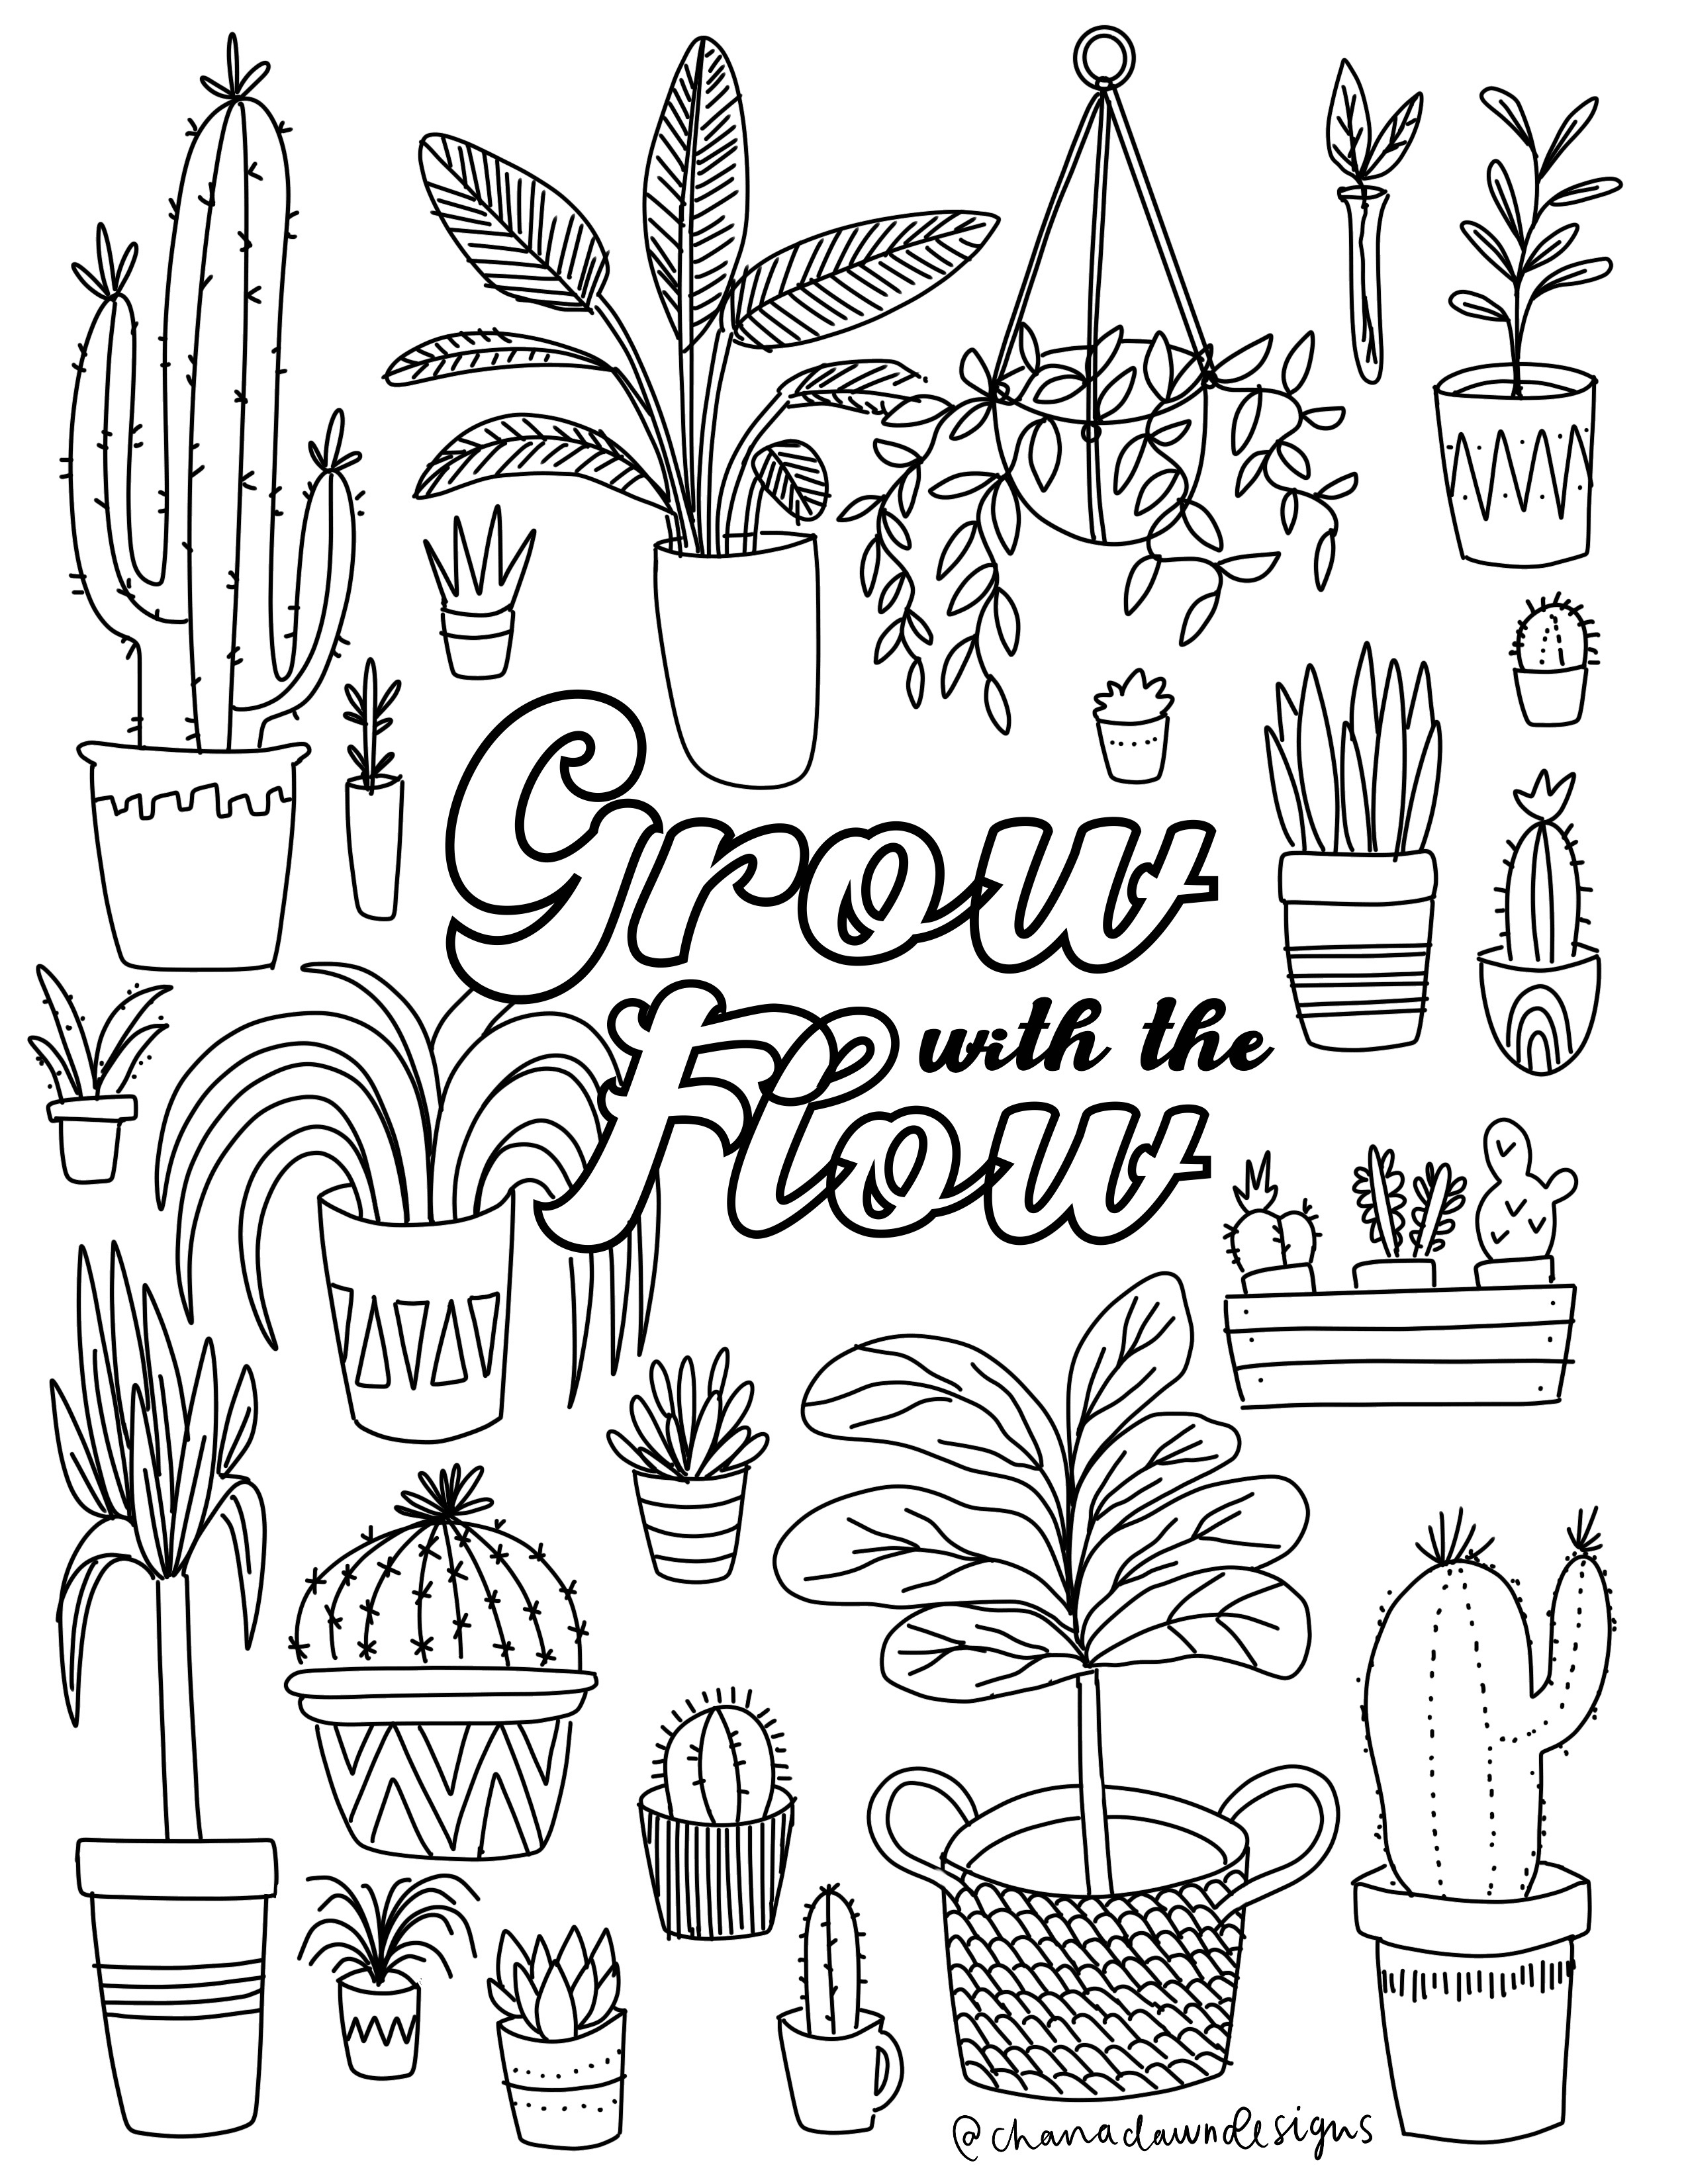 GrowWithTheFlow-ColoringPage